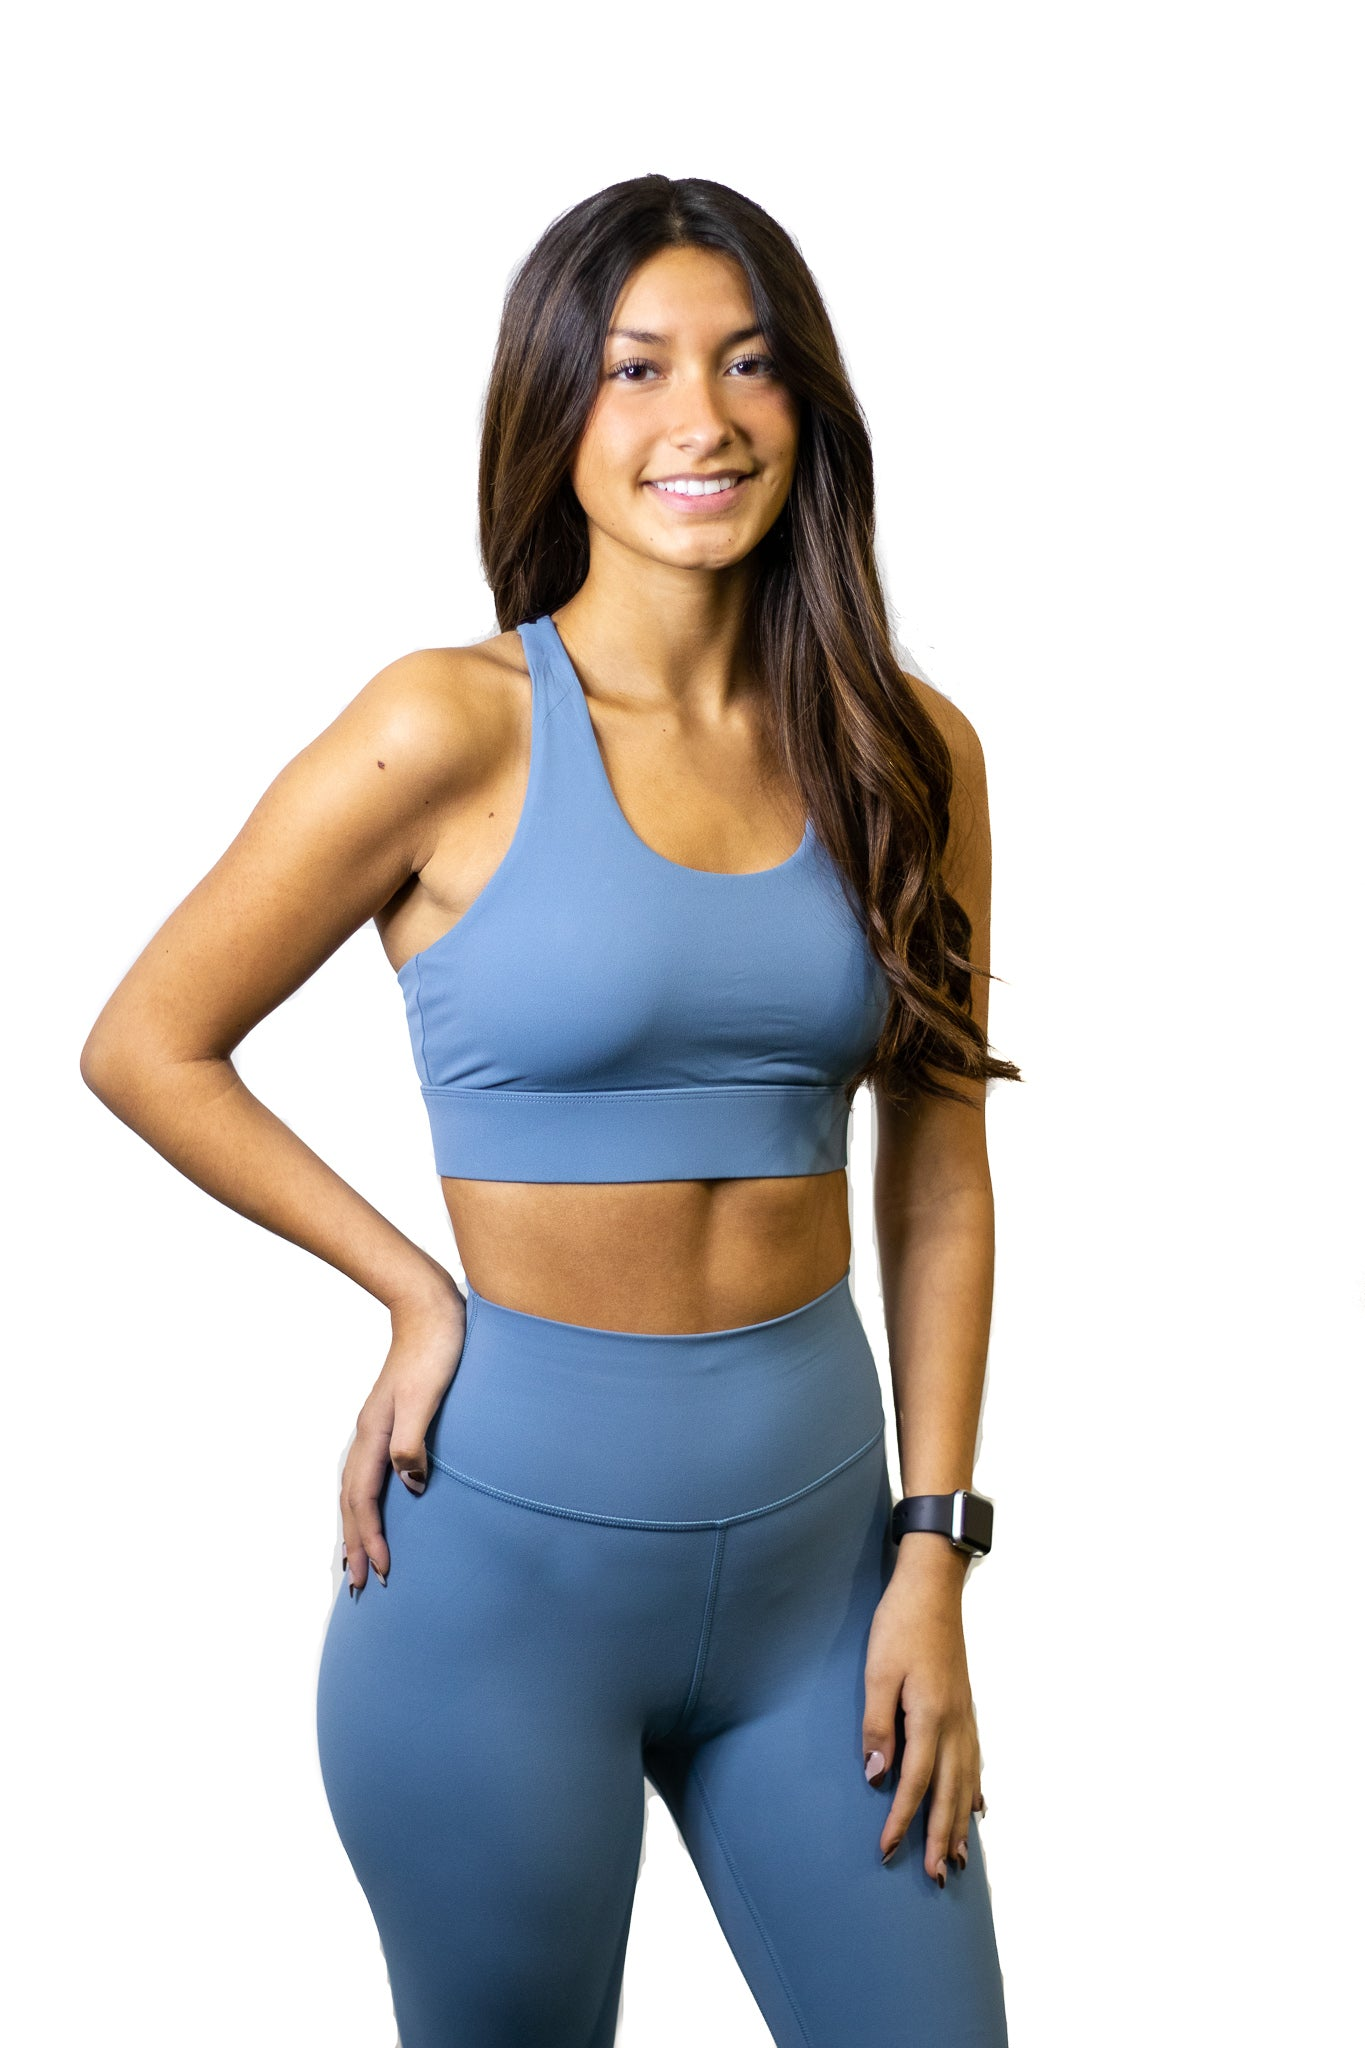 Ocean blue high support strappy sports bra for working out, yoga, and crossfit!